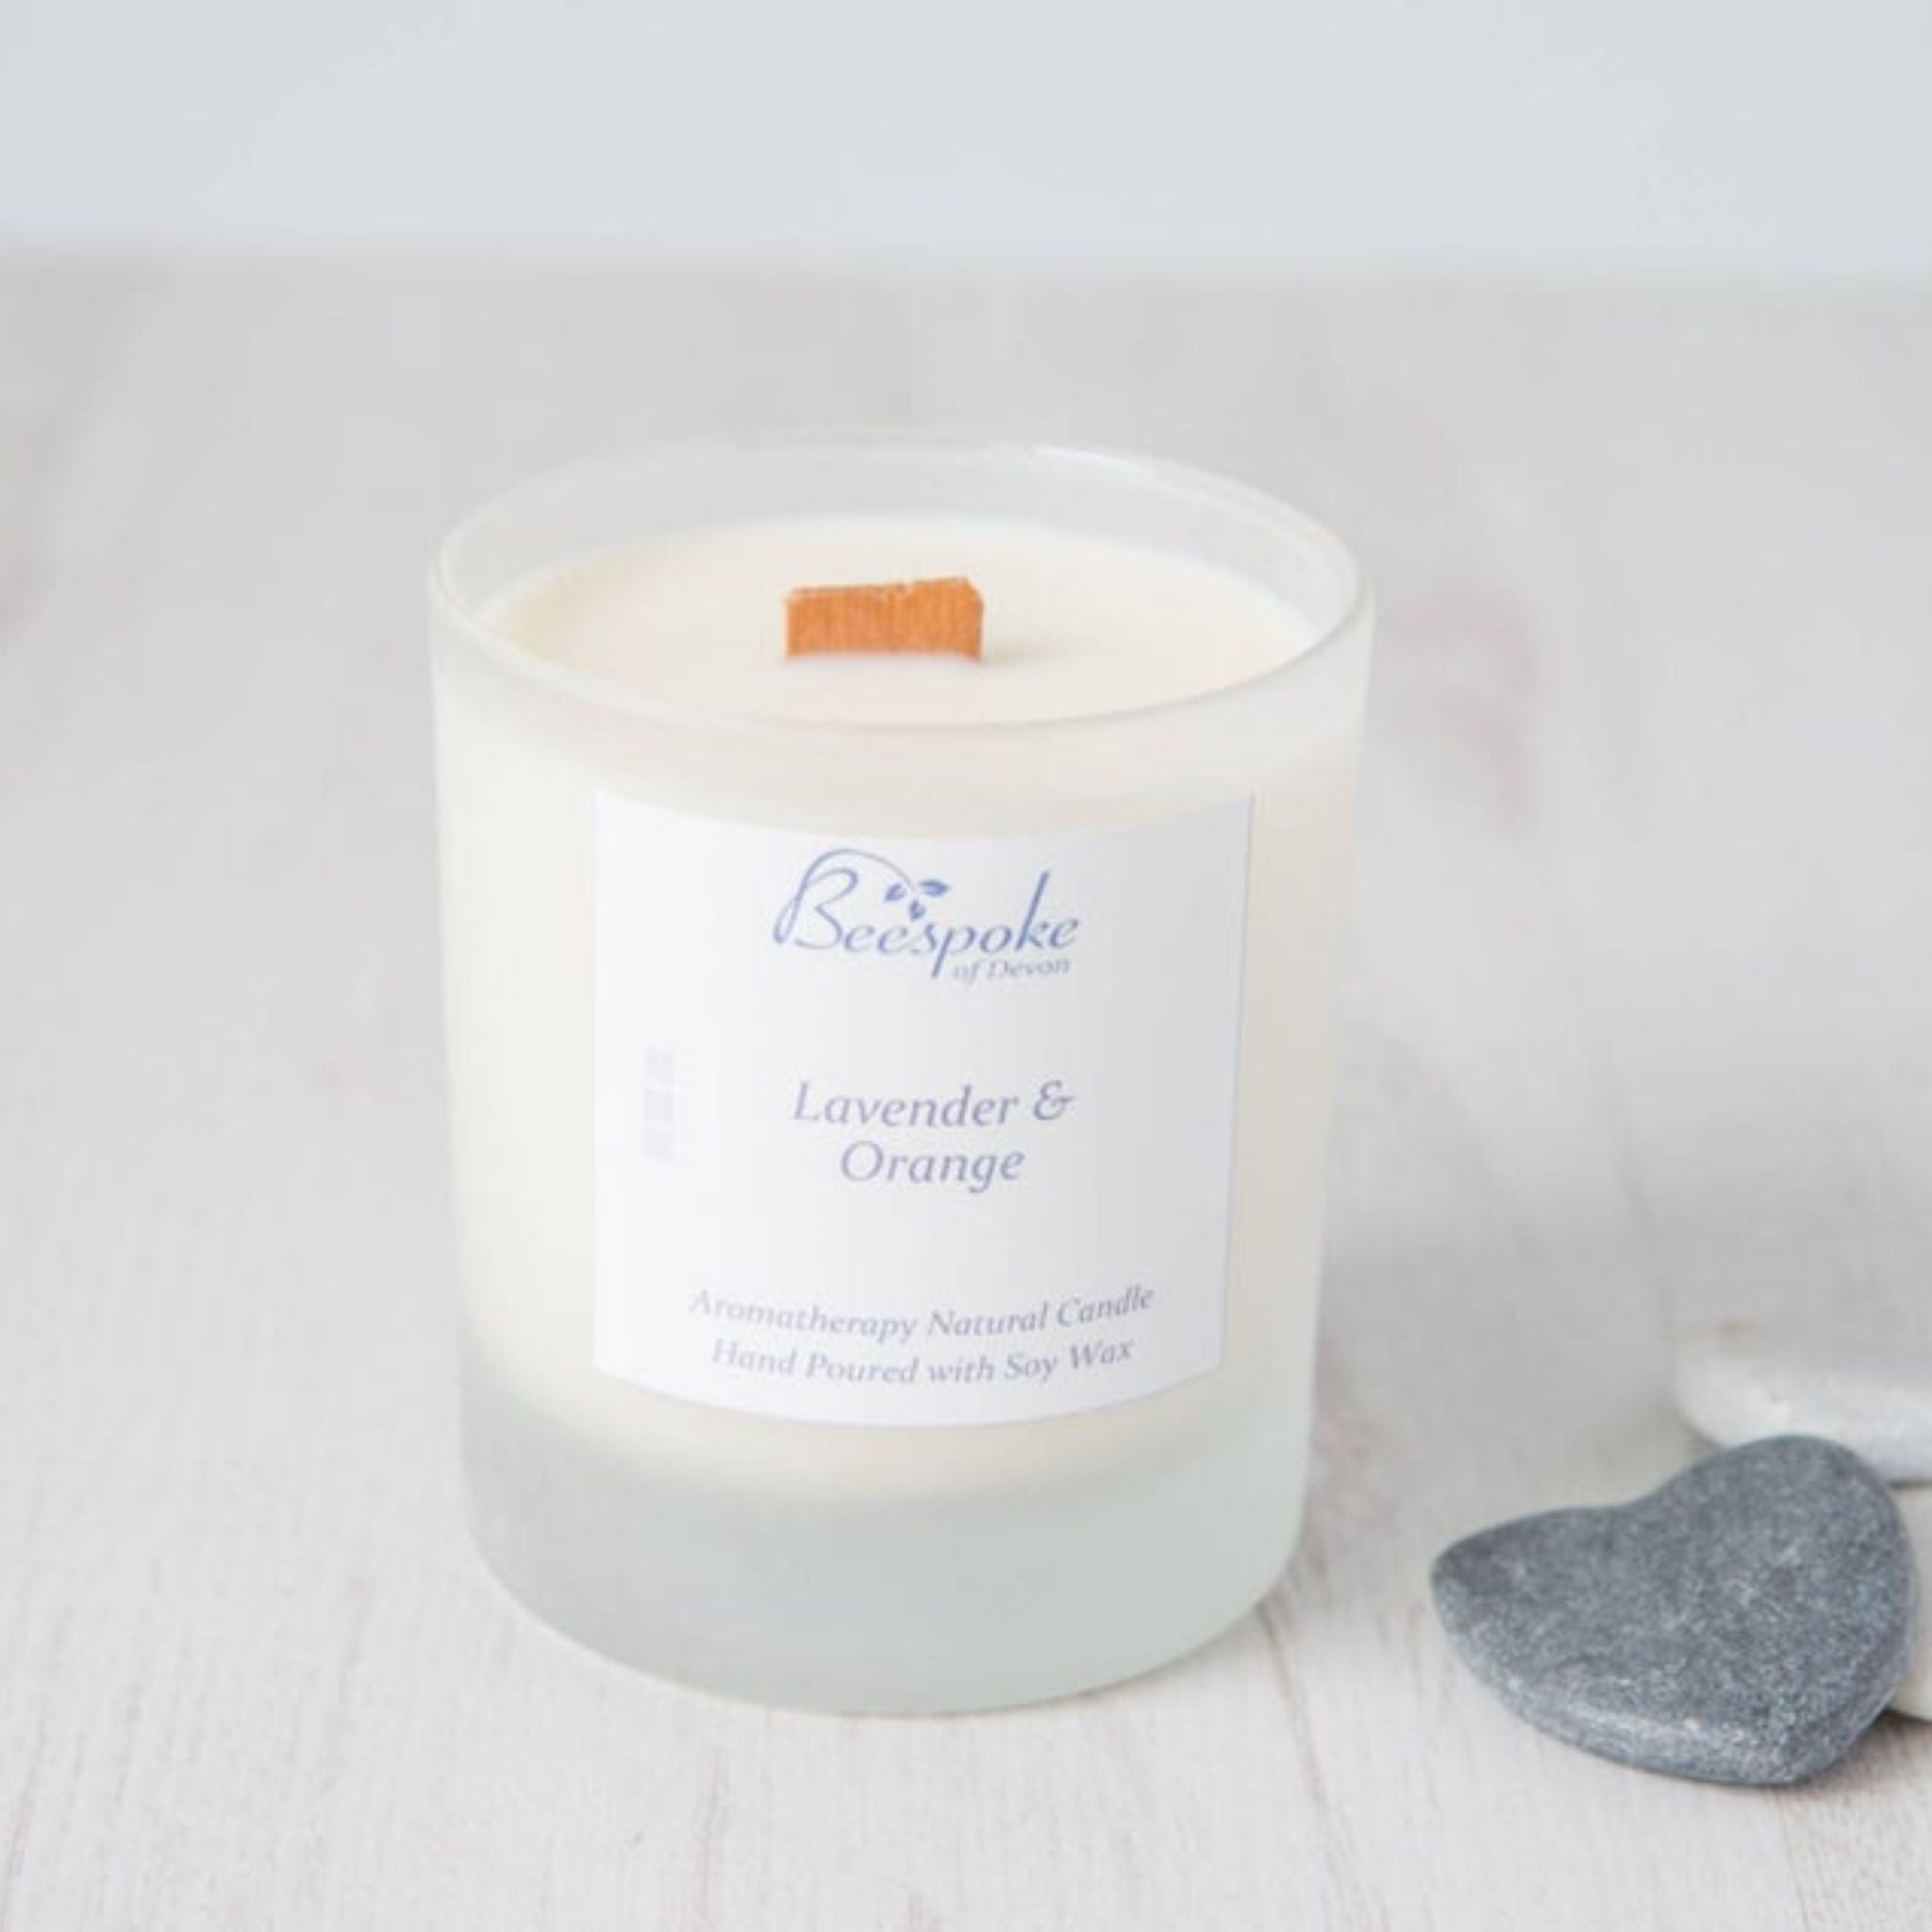 Wood Wick Aromatherapy Candle - Lavender & Orange